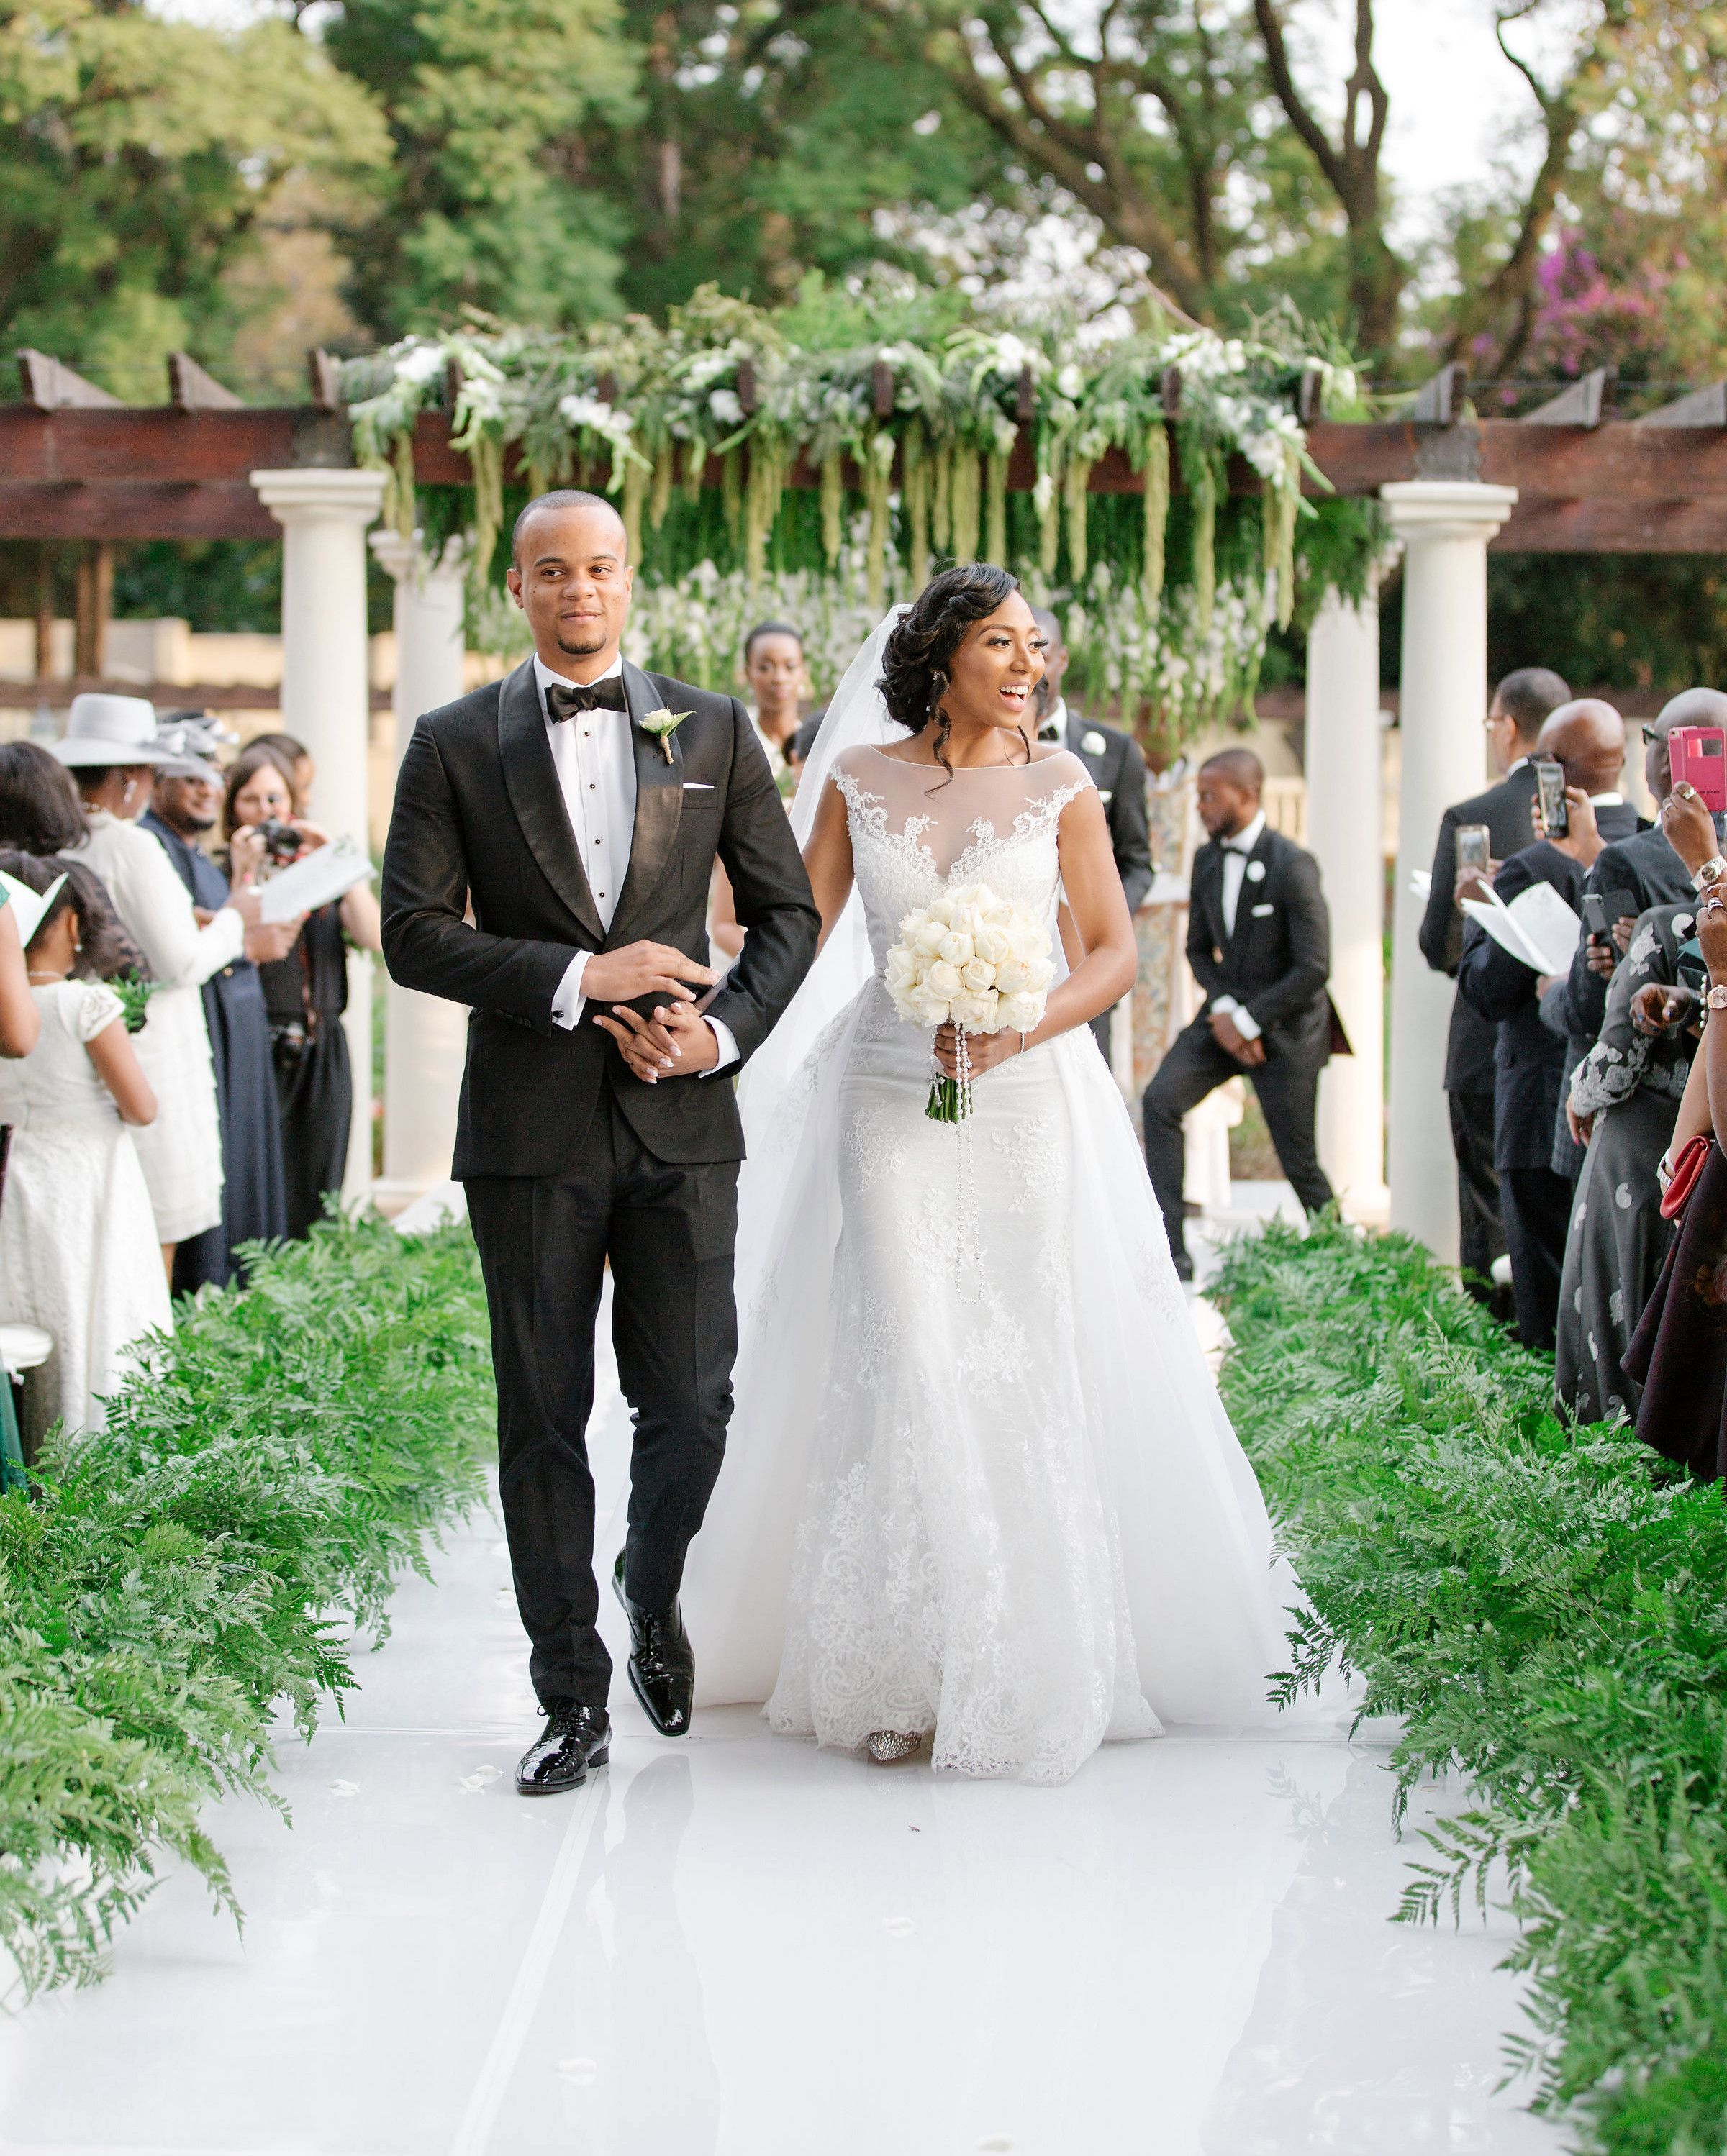 One Couple's Flower-Filled Destination Wedding in ...